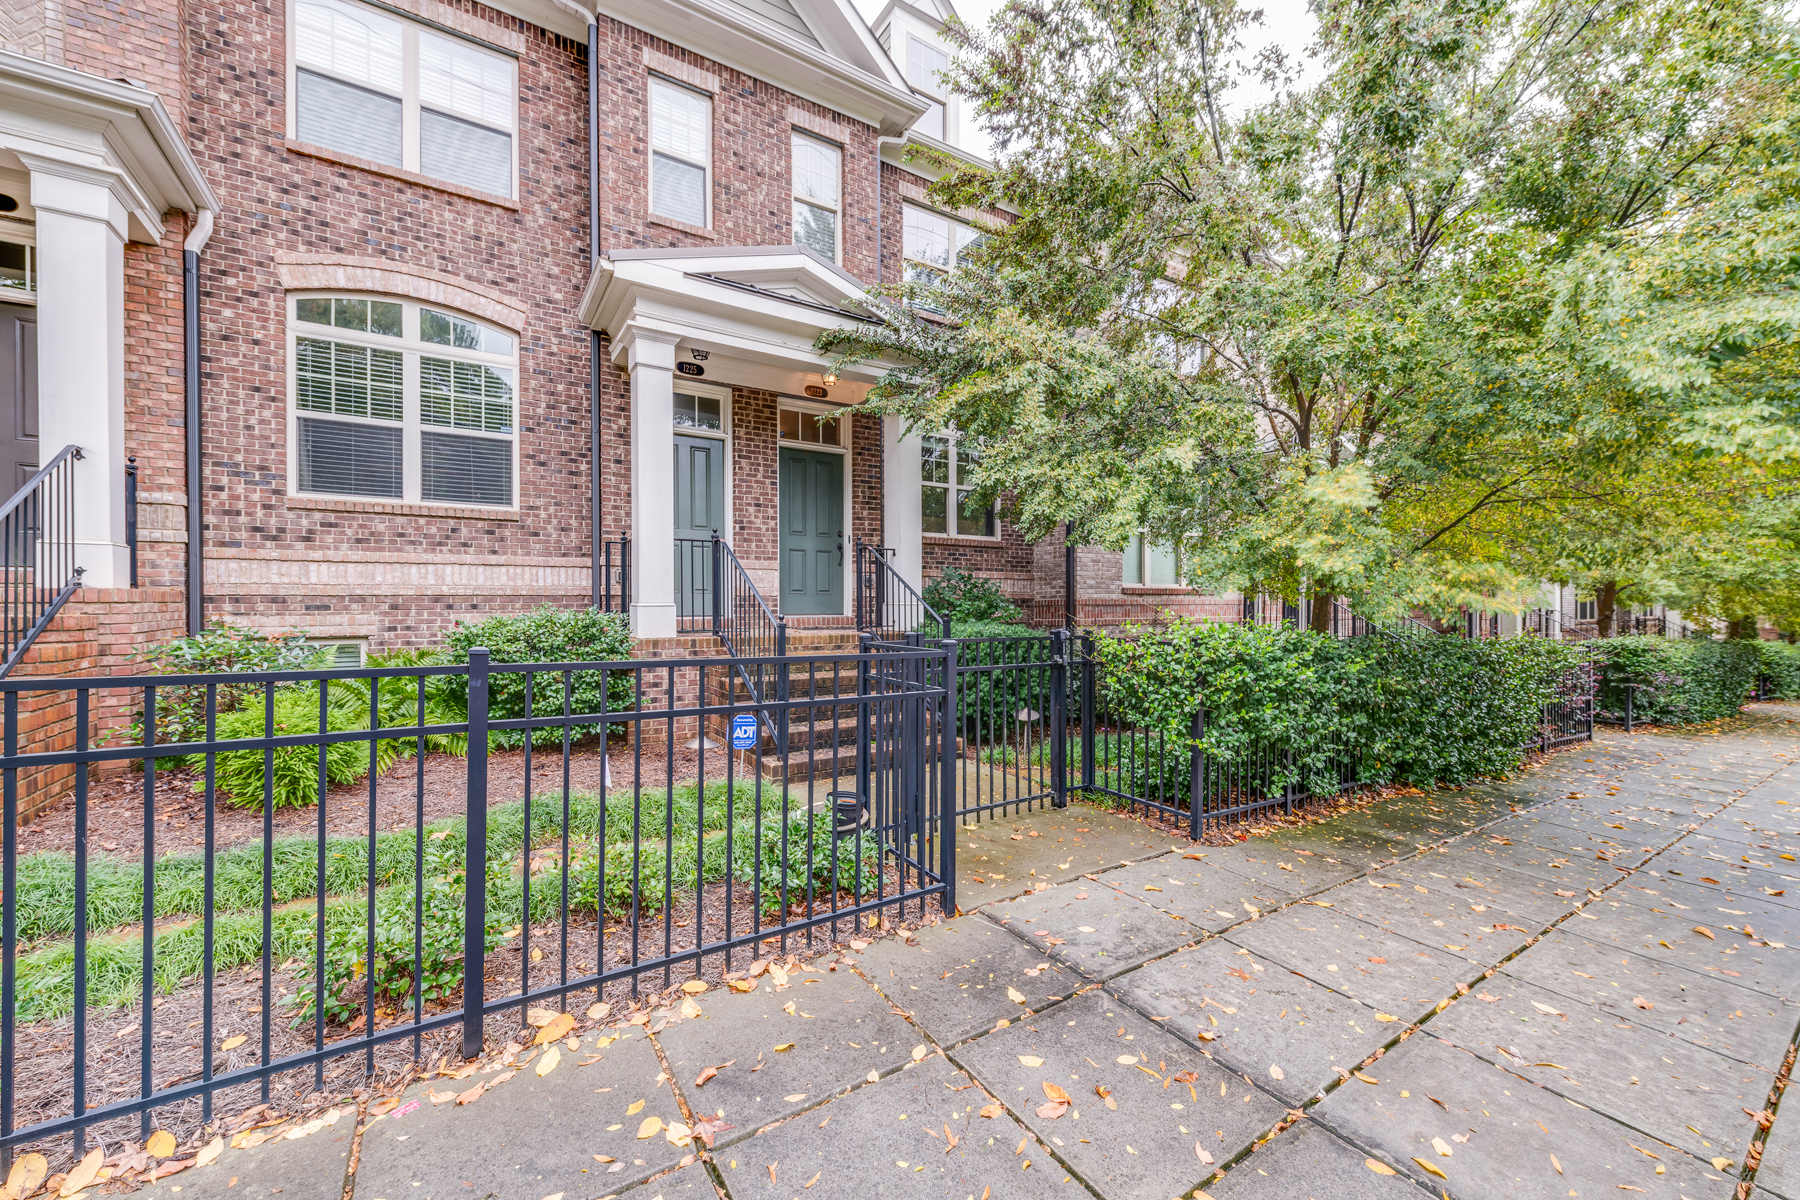 Townhouse for Sale at Three Bedroom, Three And A Half Bath Townhome In A Community That Has It All 1223 Lavista Road Atlanta, Georgia 30324 United States